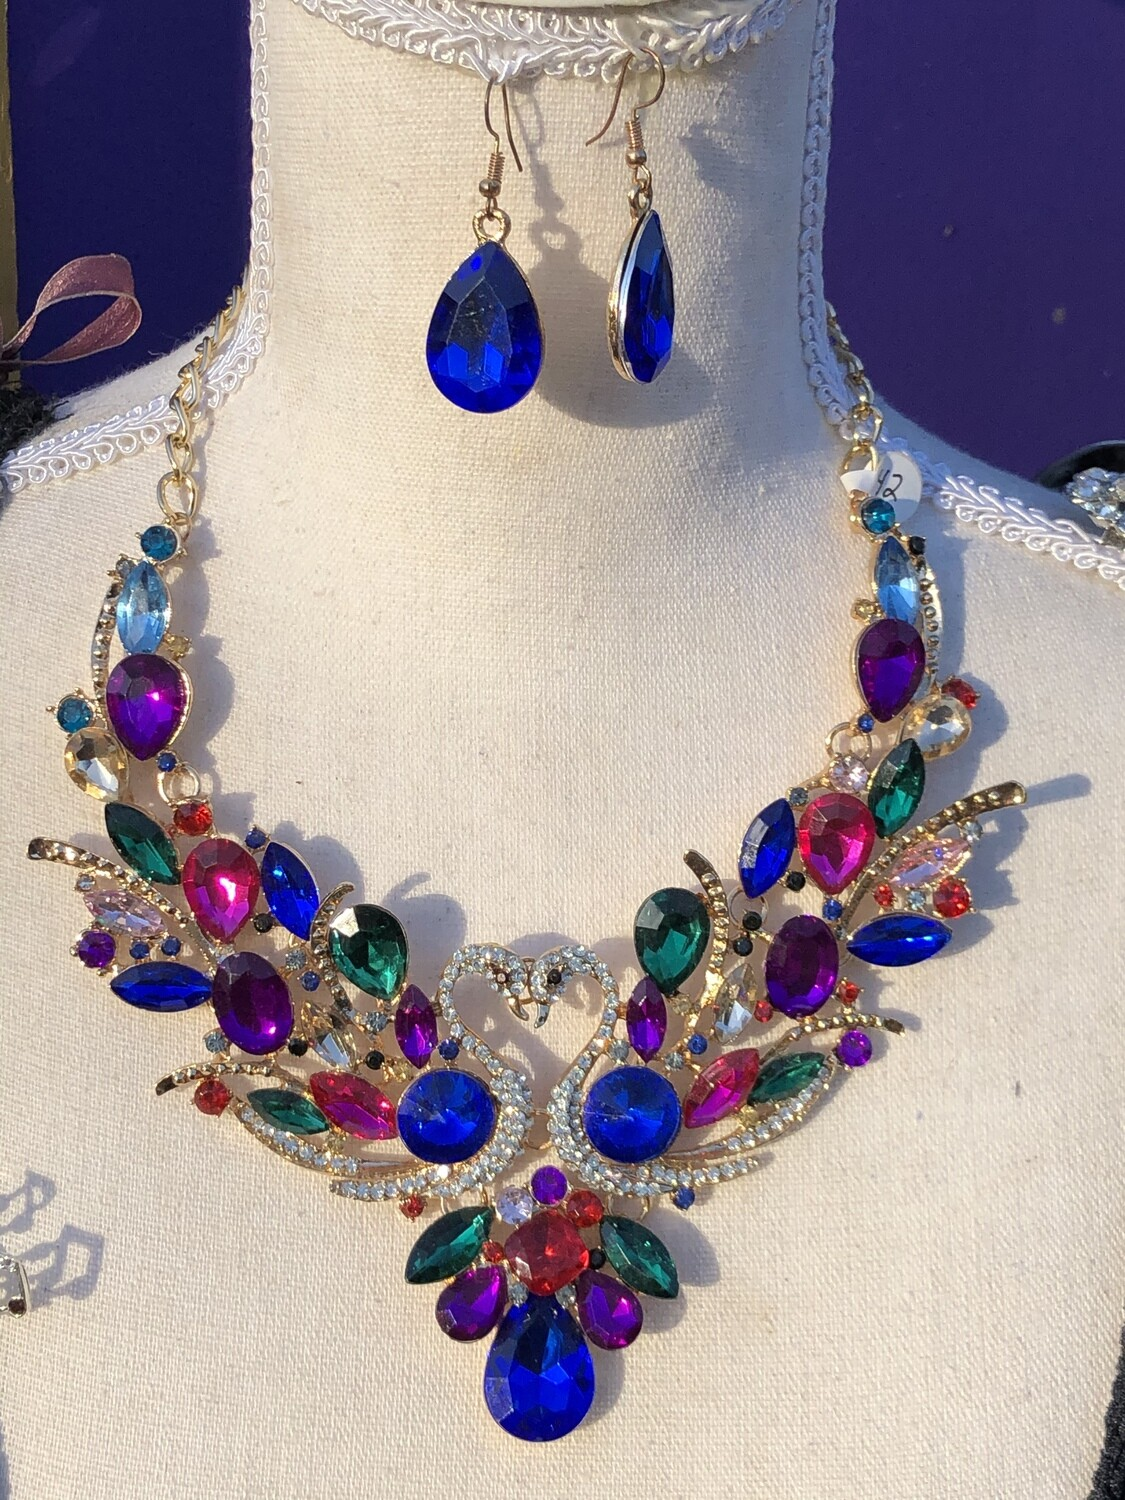 Peacock necklace set